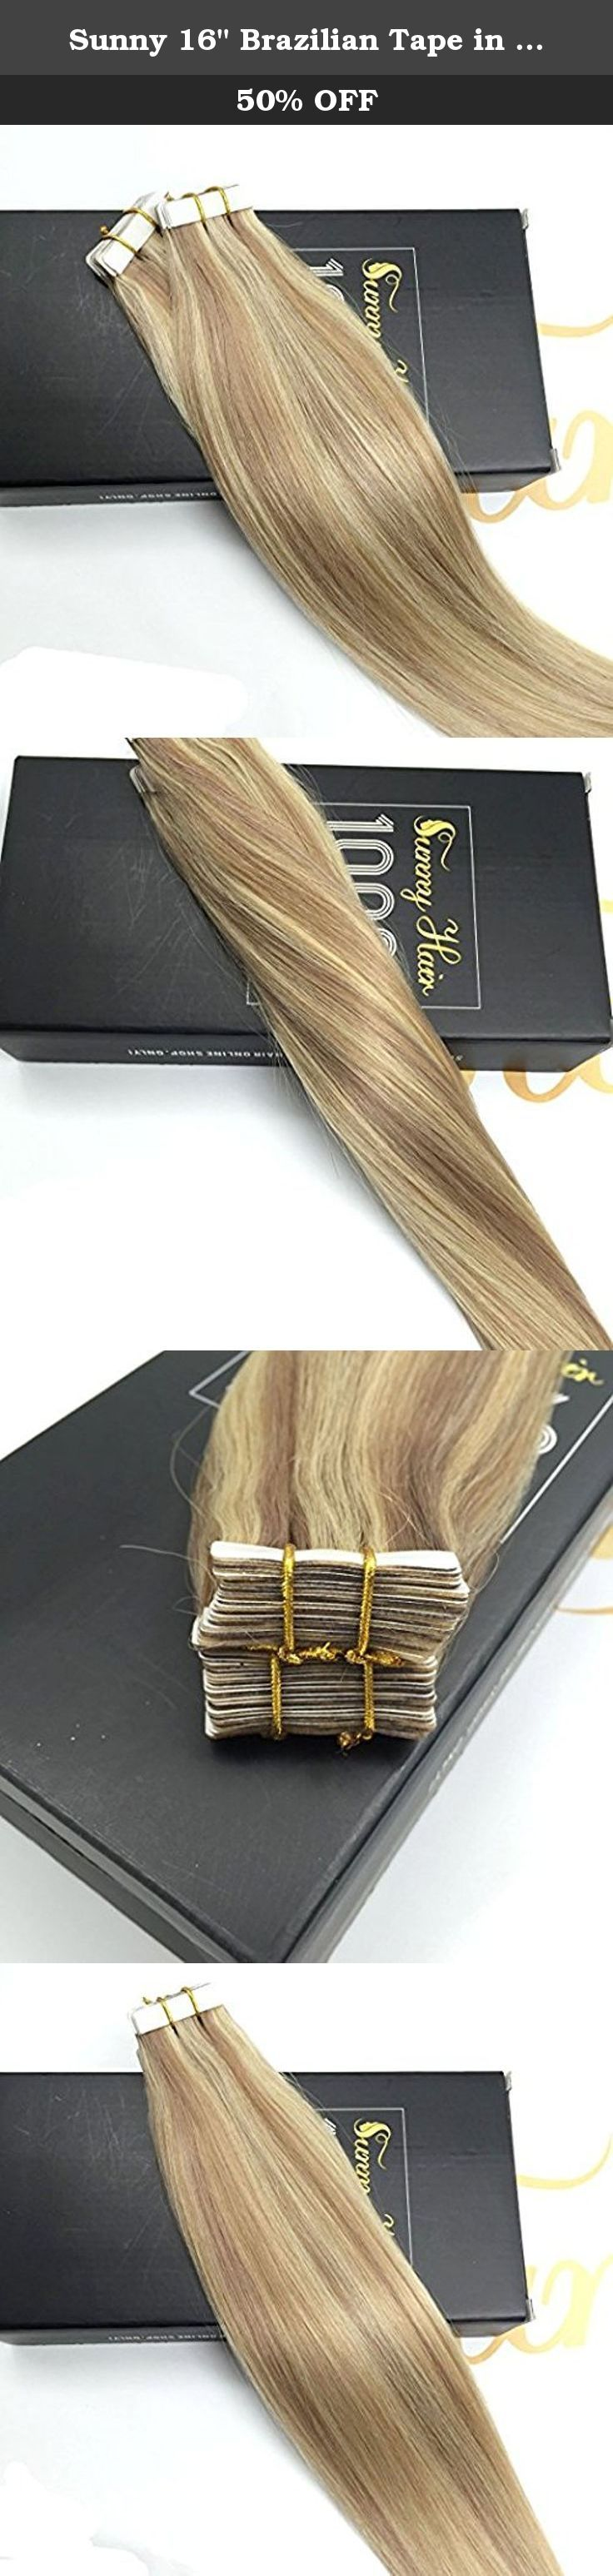 """Sunny 16"""" Brazilian Tape in Human Hair Extensions Two Tone Color Dark Ash Blonde with Golden Blonde Highlights Human Hair Extensions Tape in 50g 20pcs. Tape in hair is a great choice for anyone with almost any hair type, which is fast,fun and easy. Sunny Hair tape in hair extensions are made with 100% remy human hair and premium strong adhesive tape. Hair Details: Sunny Balayage Hair Extension Type: Single Drawn Tape In/Skin Weft Hair Texture: Straight, Please note that hair gets a little..."""